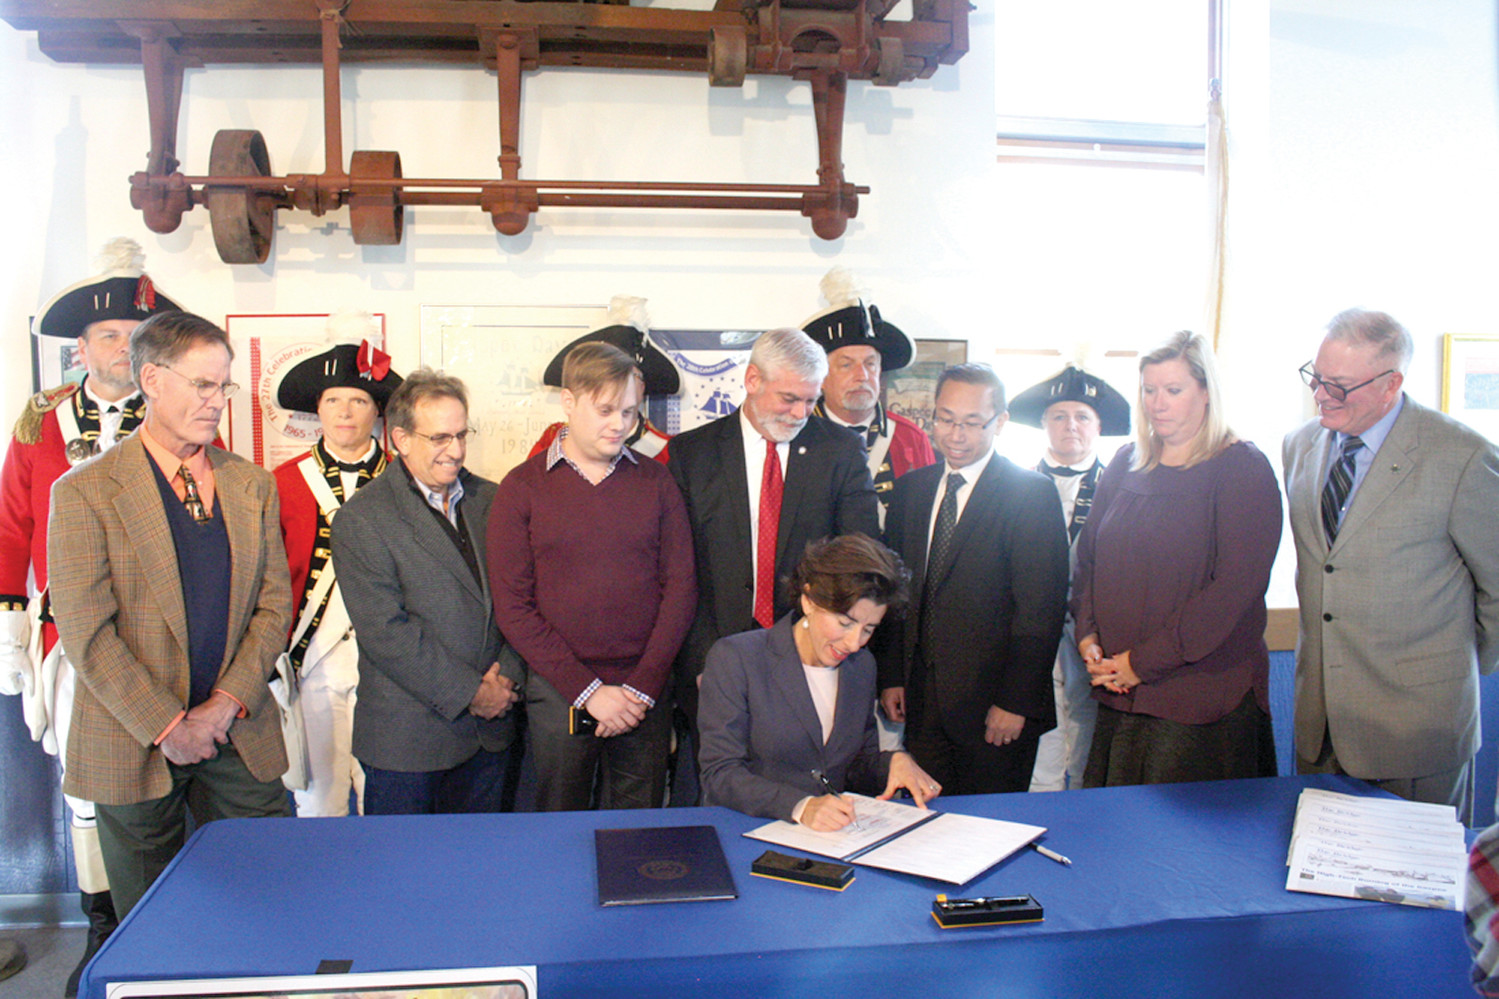 POWER OF THE PLATES: Flanked by Pawtuxet Rangers and watching Governor Raimondo sign the Gaspee Days License Bill are (from left) Councilman Rick Corley, Senator Jim Miller, Gaspee Committee President Ryan Giviens, Mayor Avedisian, Mayor Fung, Senator Lynch Prata and Representative McNamara.